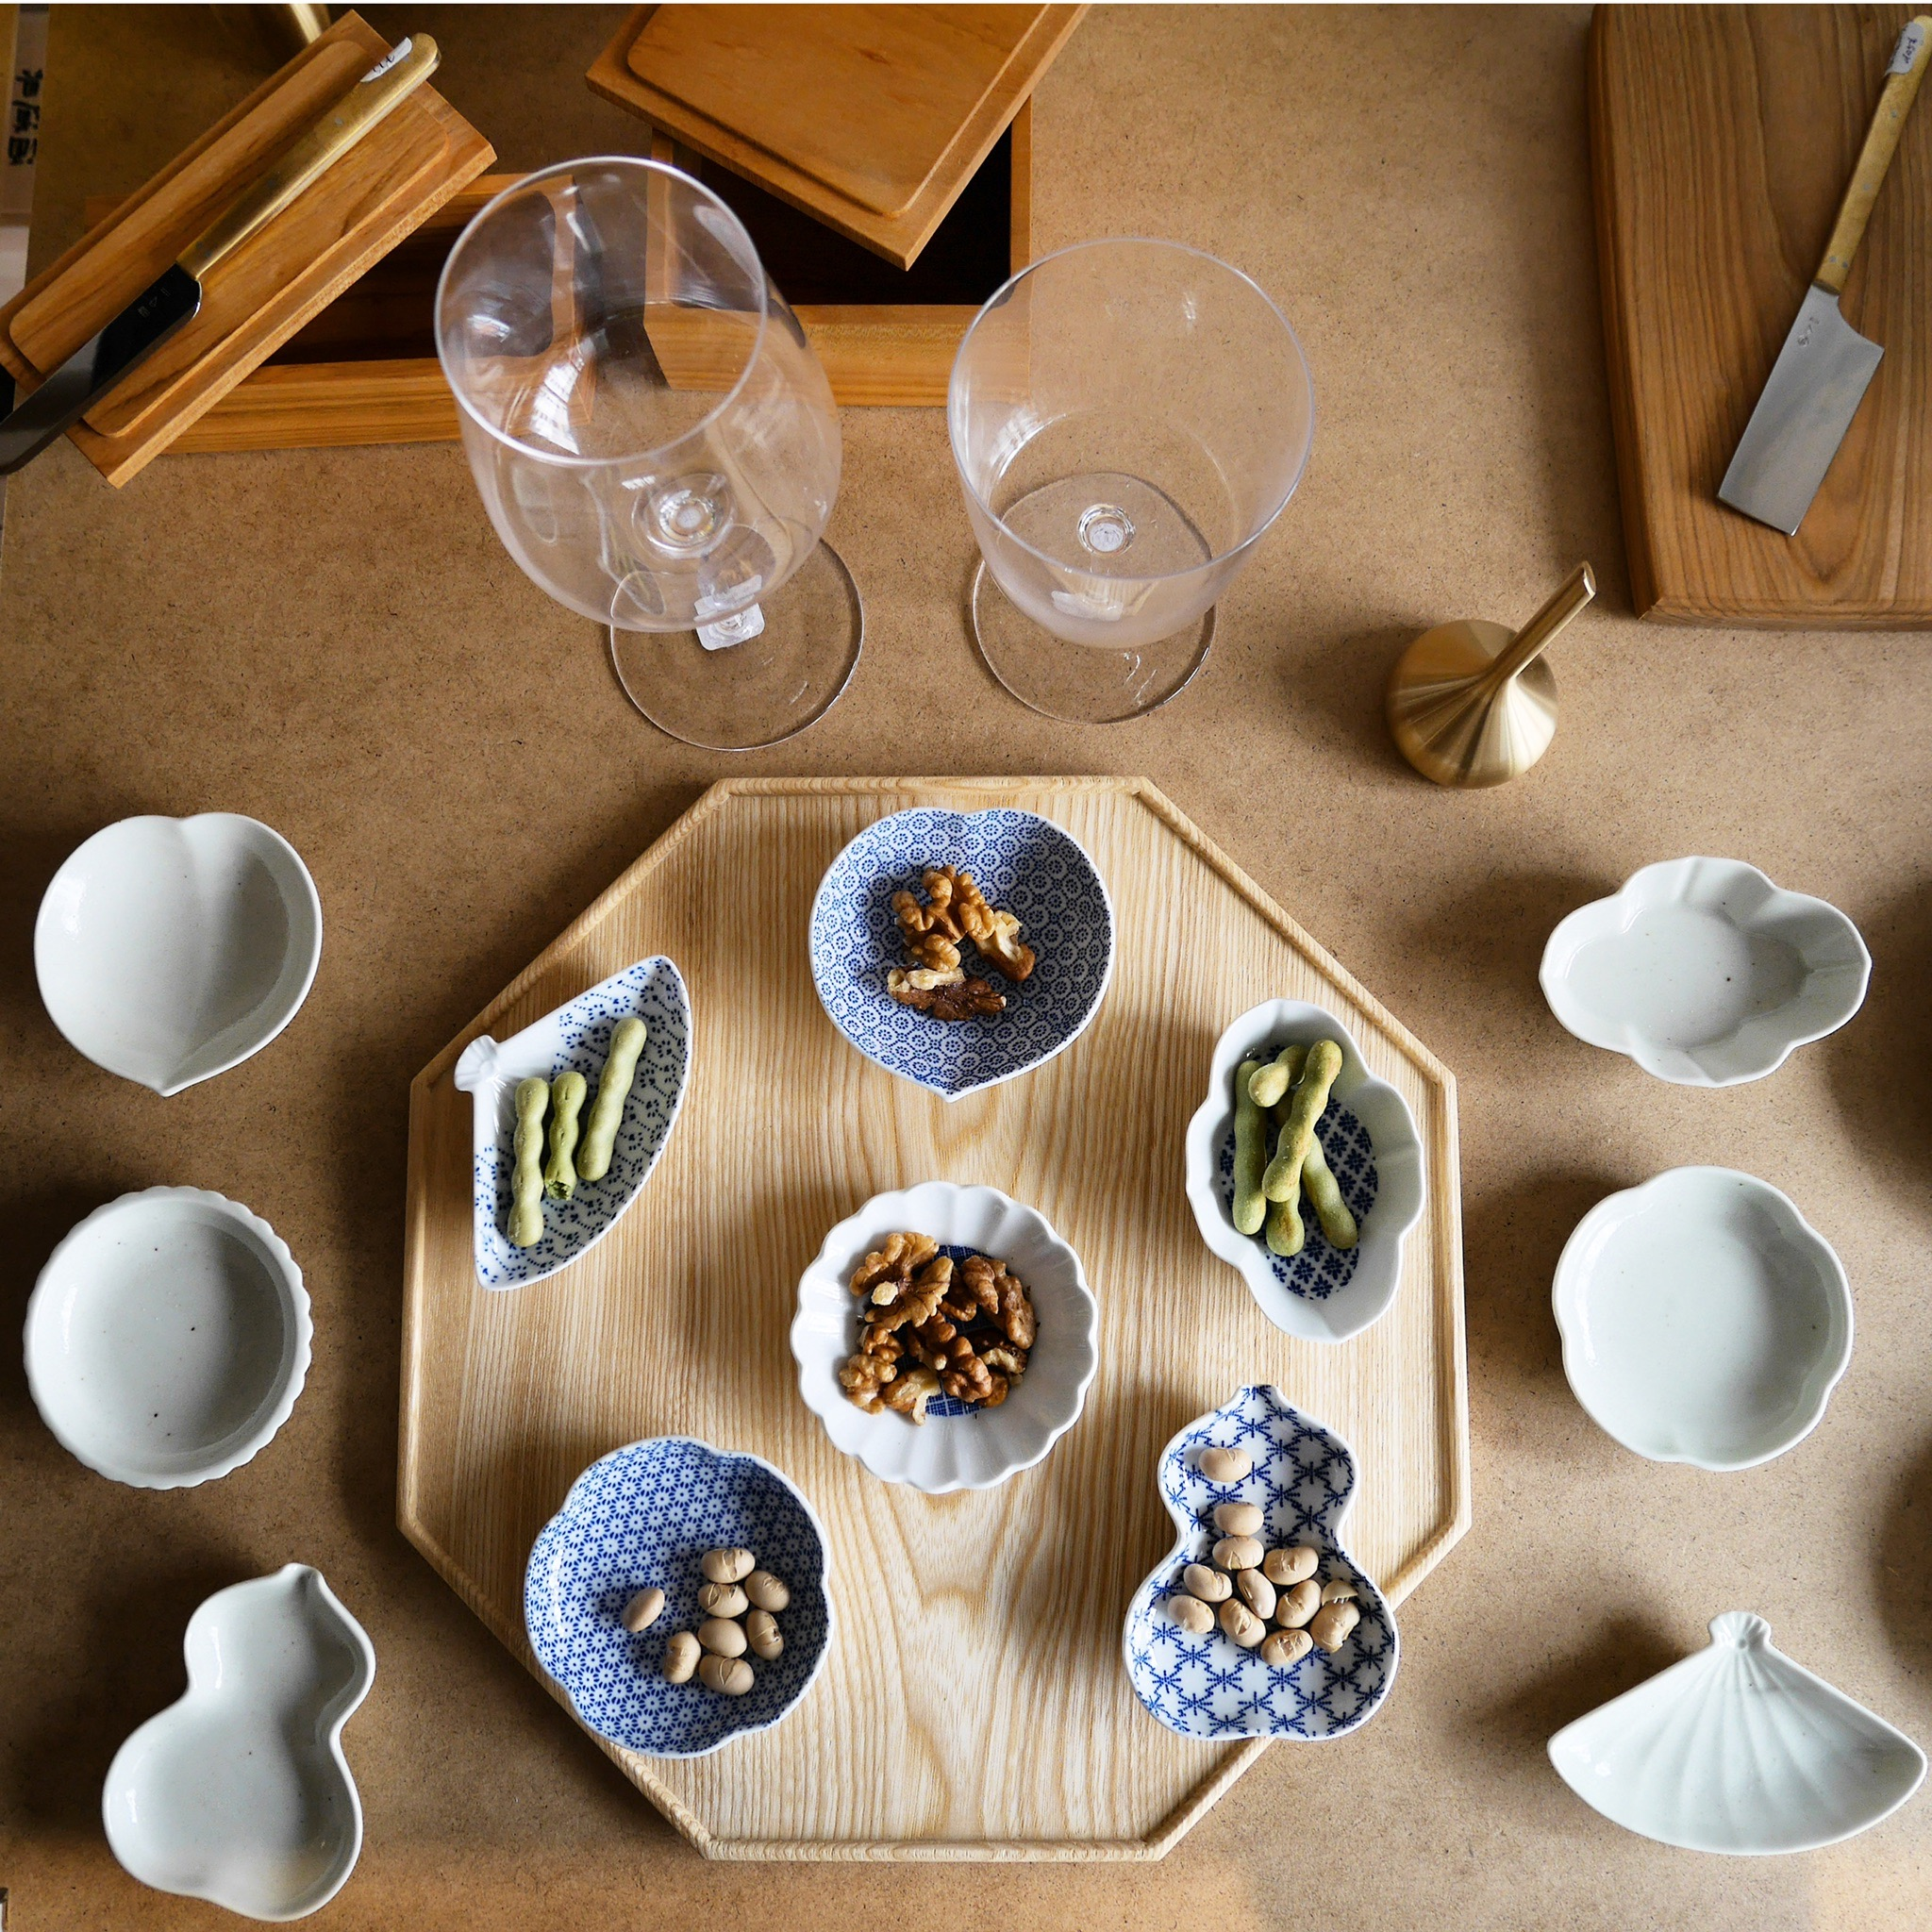 Azmaya Bean Dish and Handcrafted Tableware